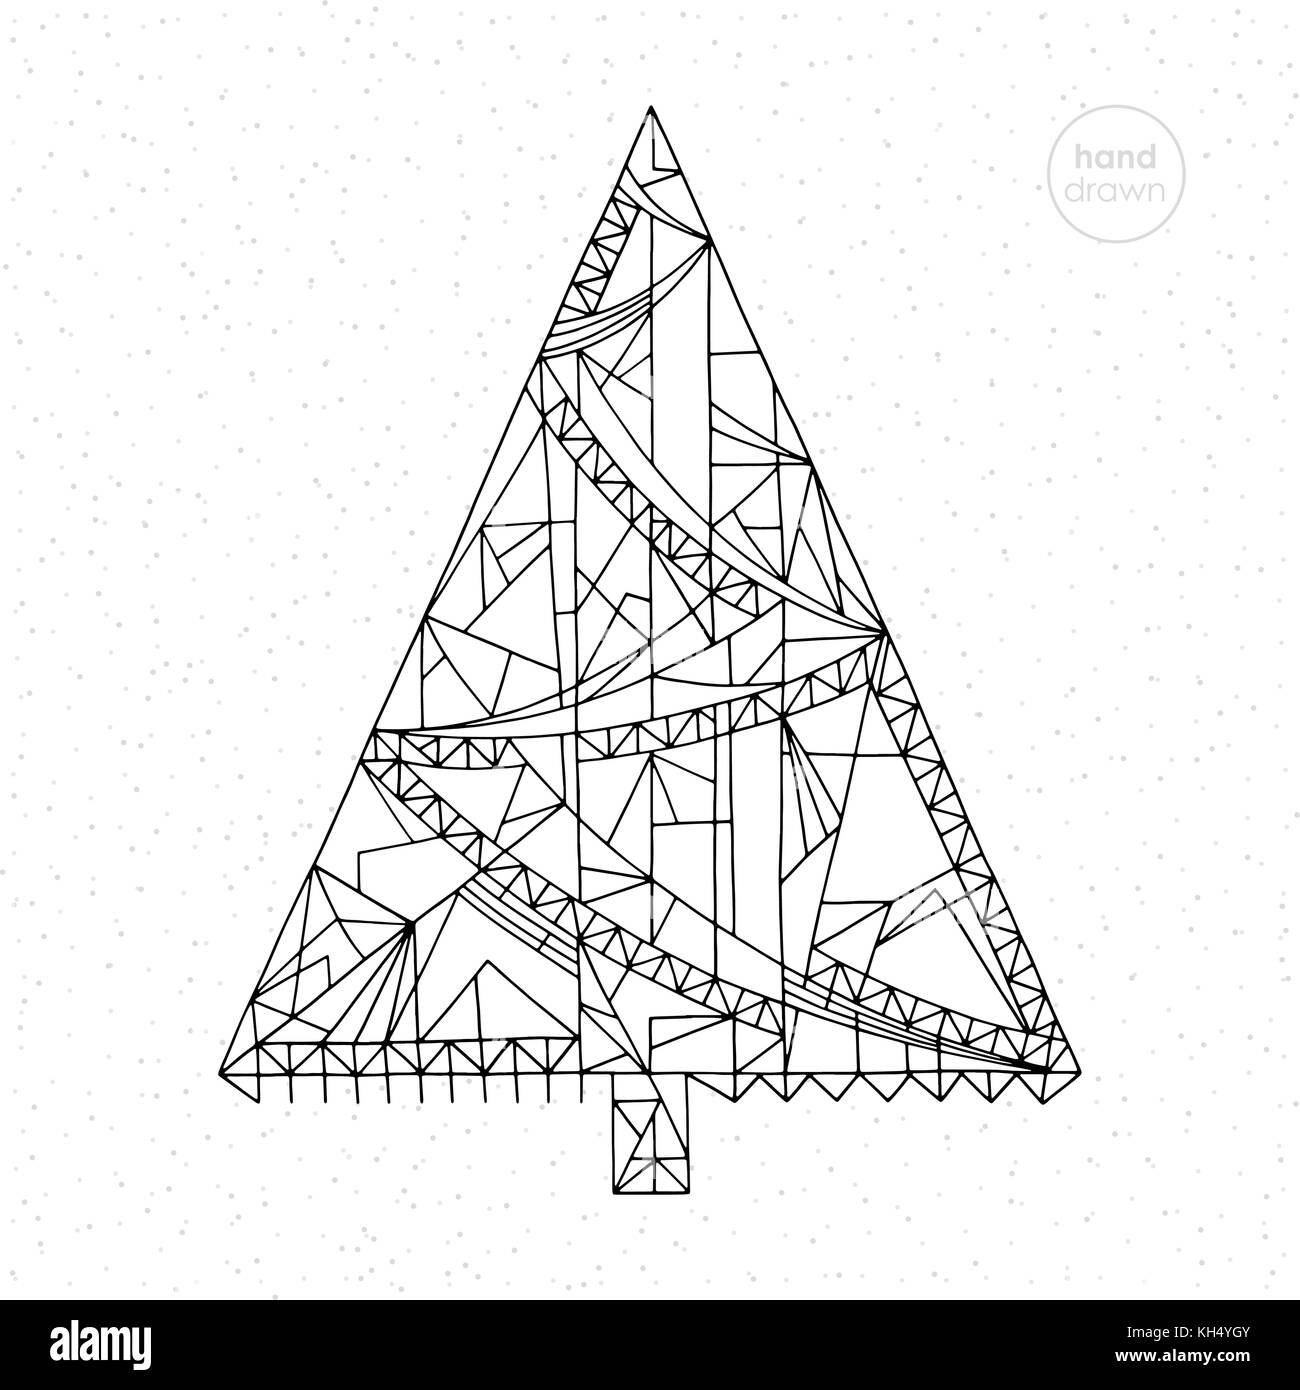 Xmas Tree Vector Illustration Hand Drawn Abstract Winter Holidays Coloring Page Christmas Background In Modern Style